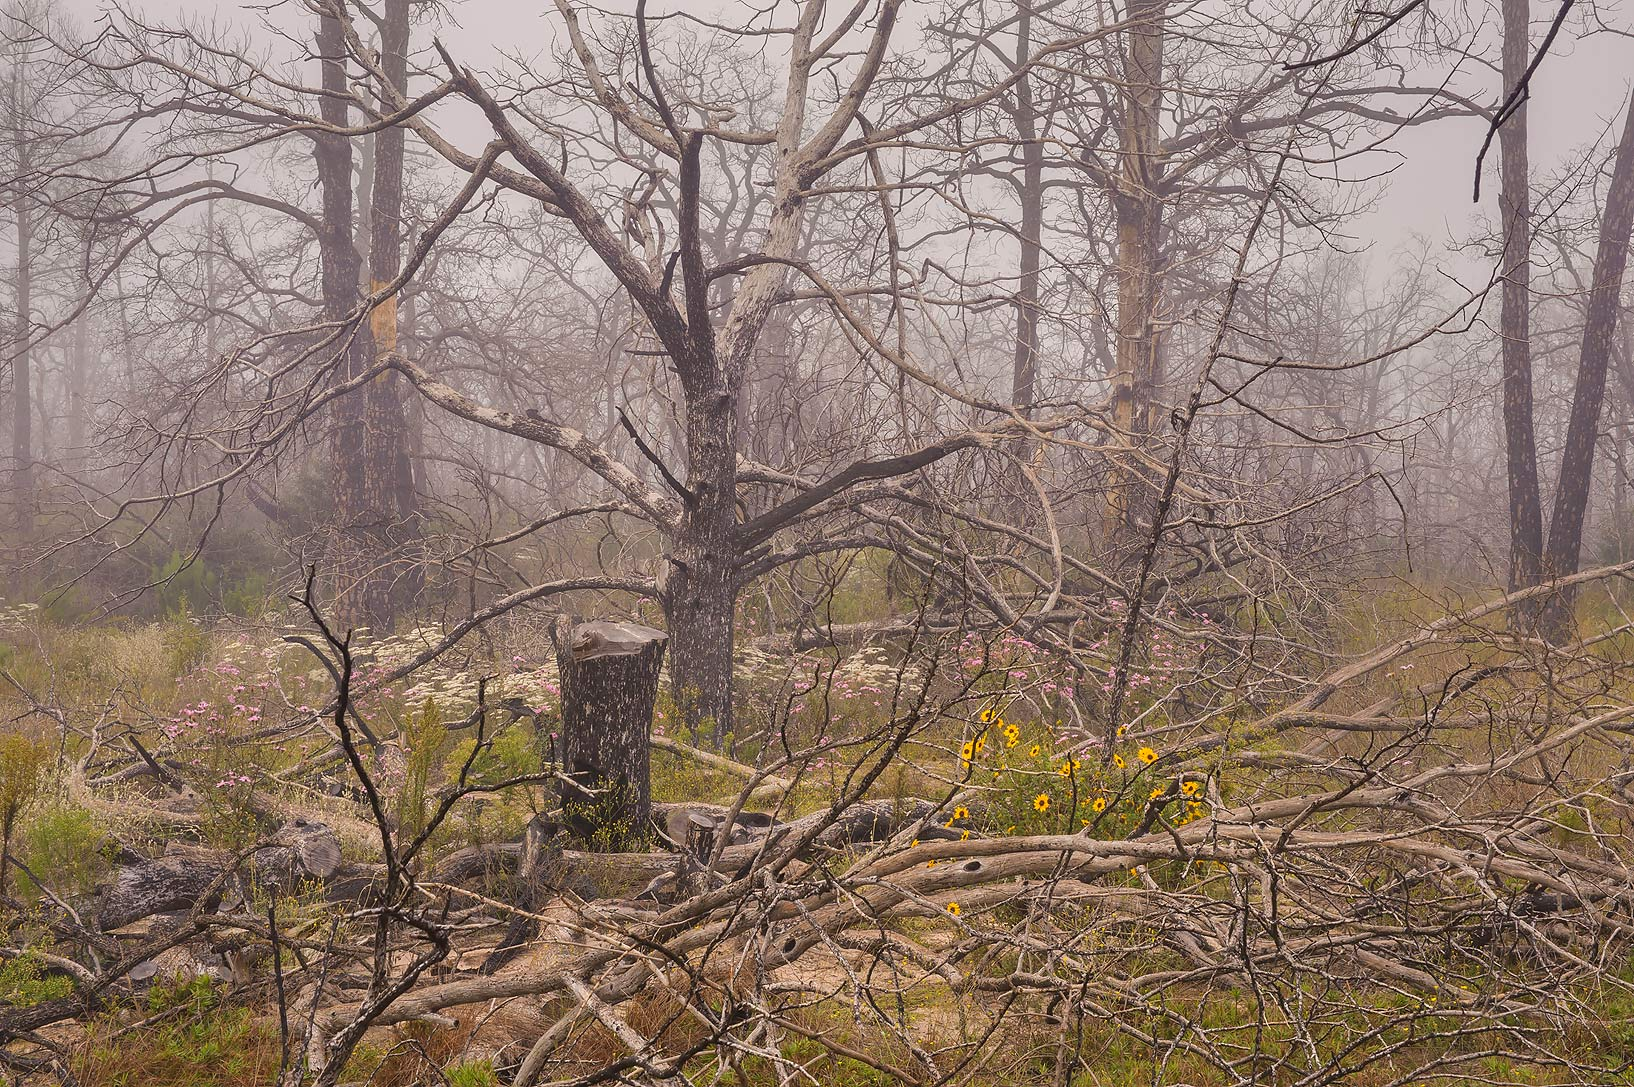 Dead trees at Roosevelt Cutoff Trail in Bastrop State Park. Bastrop, Texas